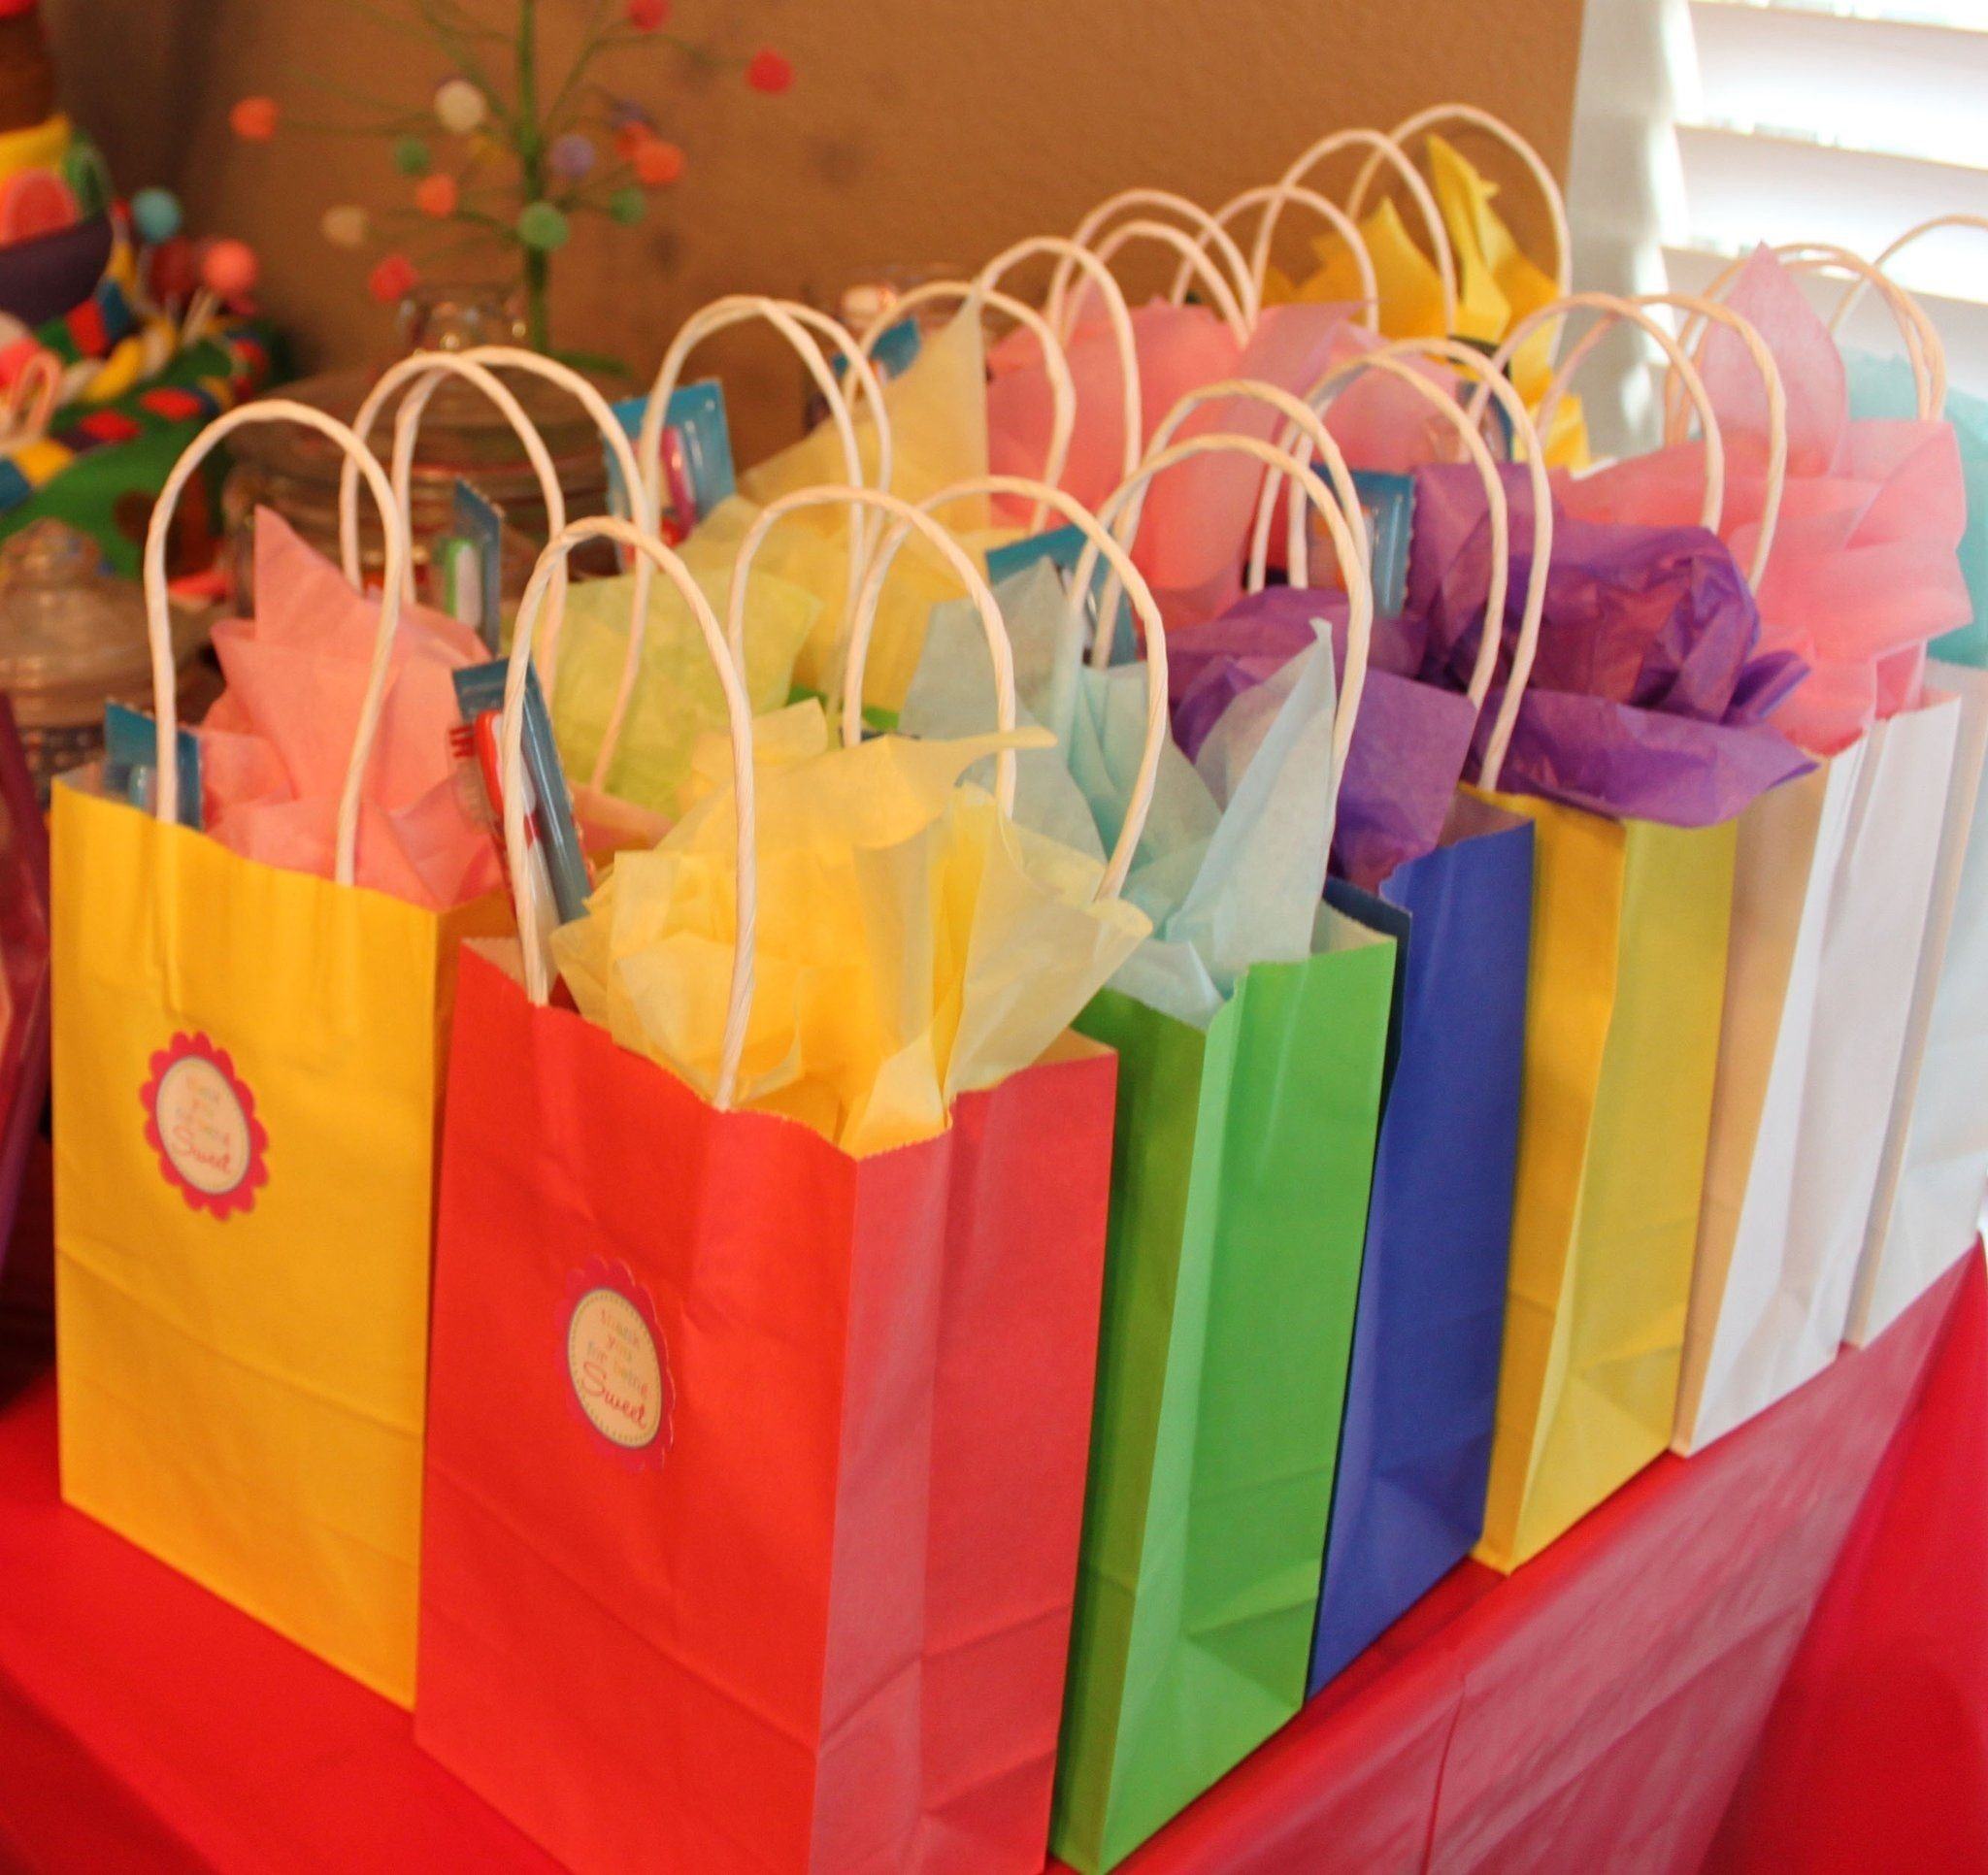 10 Spectacular Goodie Bag Ideas For Kids Birthday Parties 11 fun and easy slumber party ideas slumber parties sleepover and 2021